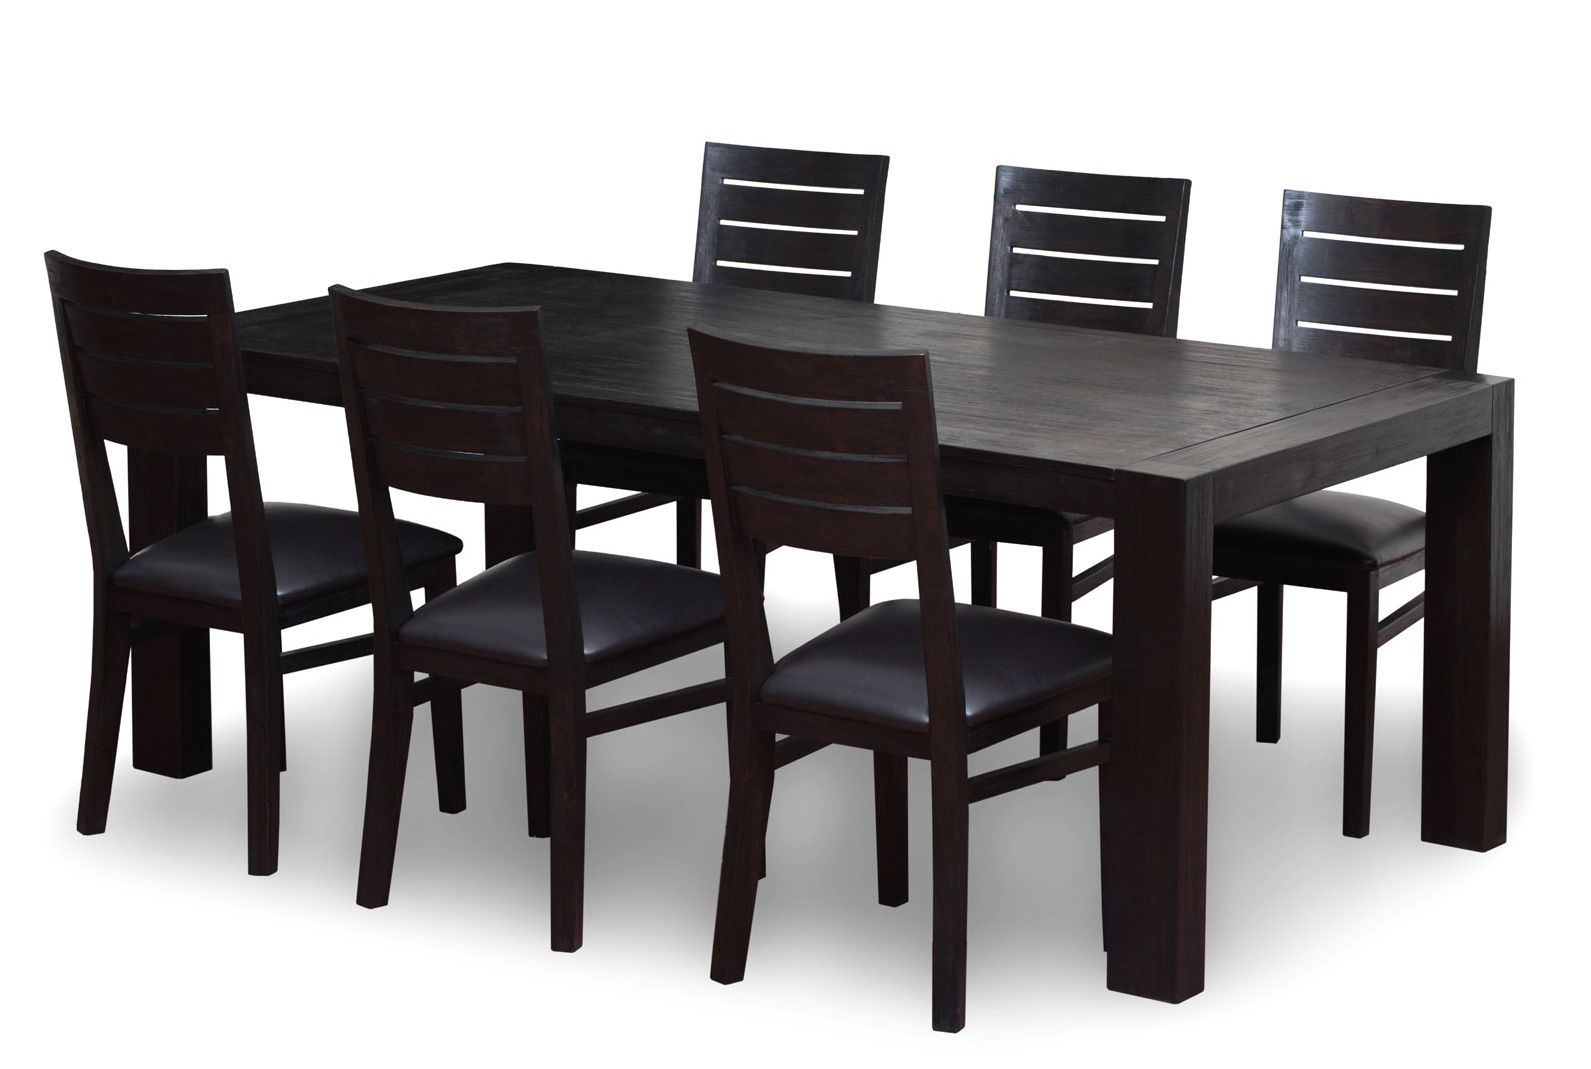 Good Costco Dining Table Set Walmart Black Walmart Dining Table With Chairs Rustic Dining Room Table Contemporary Dining Room Sets Dining Room Table